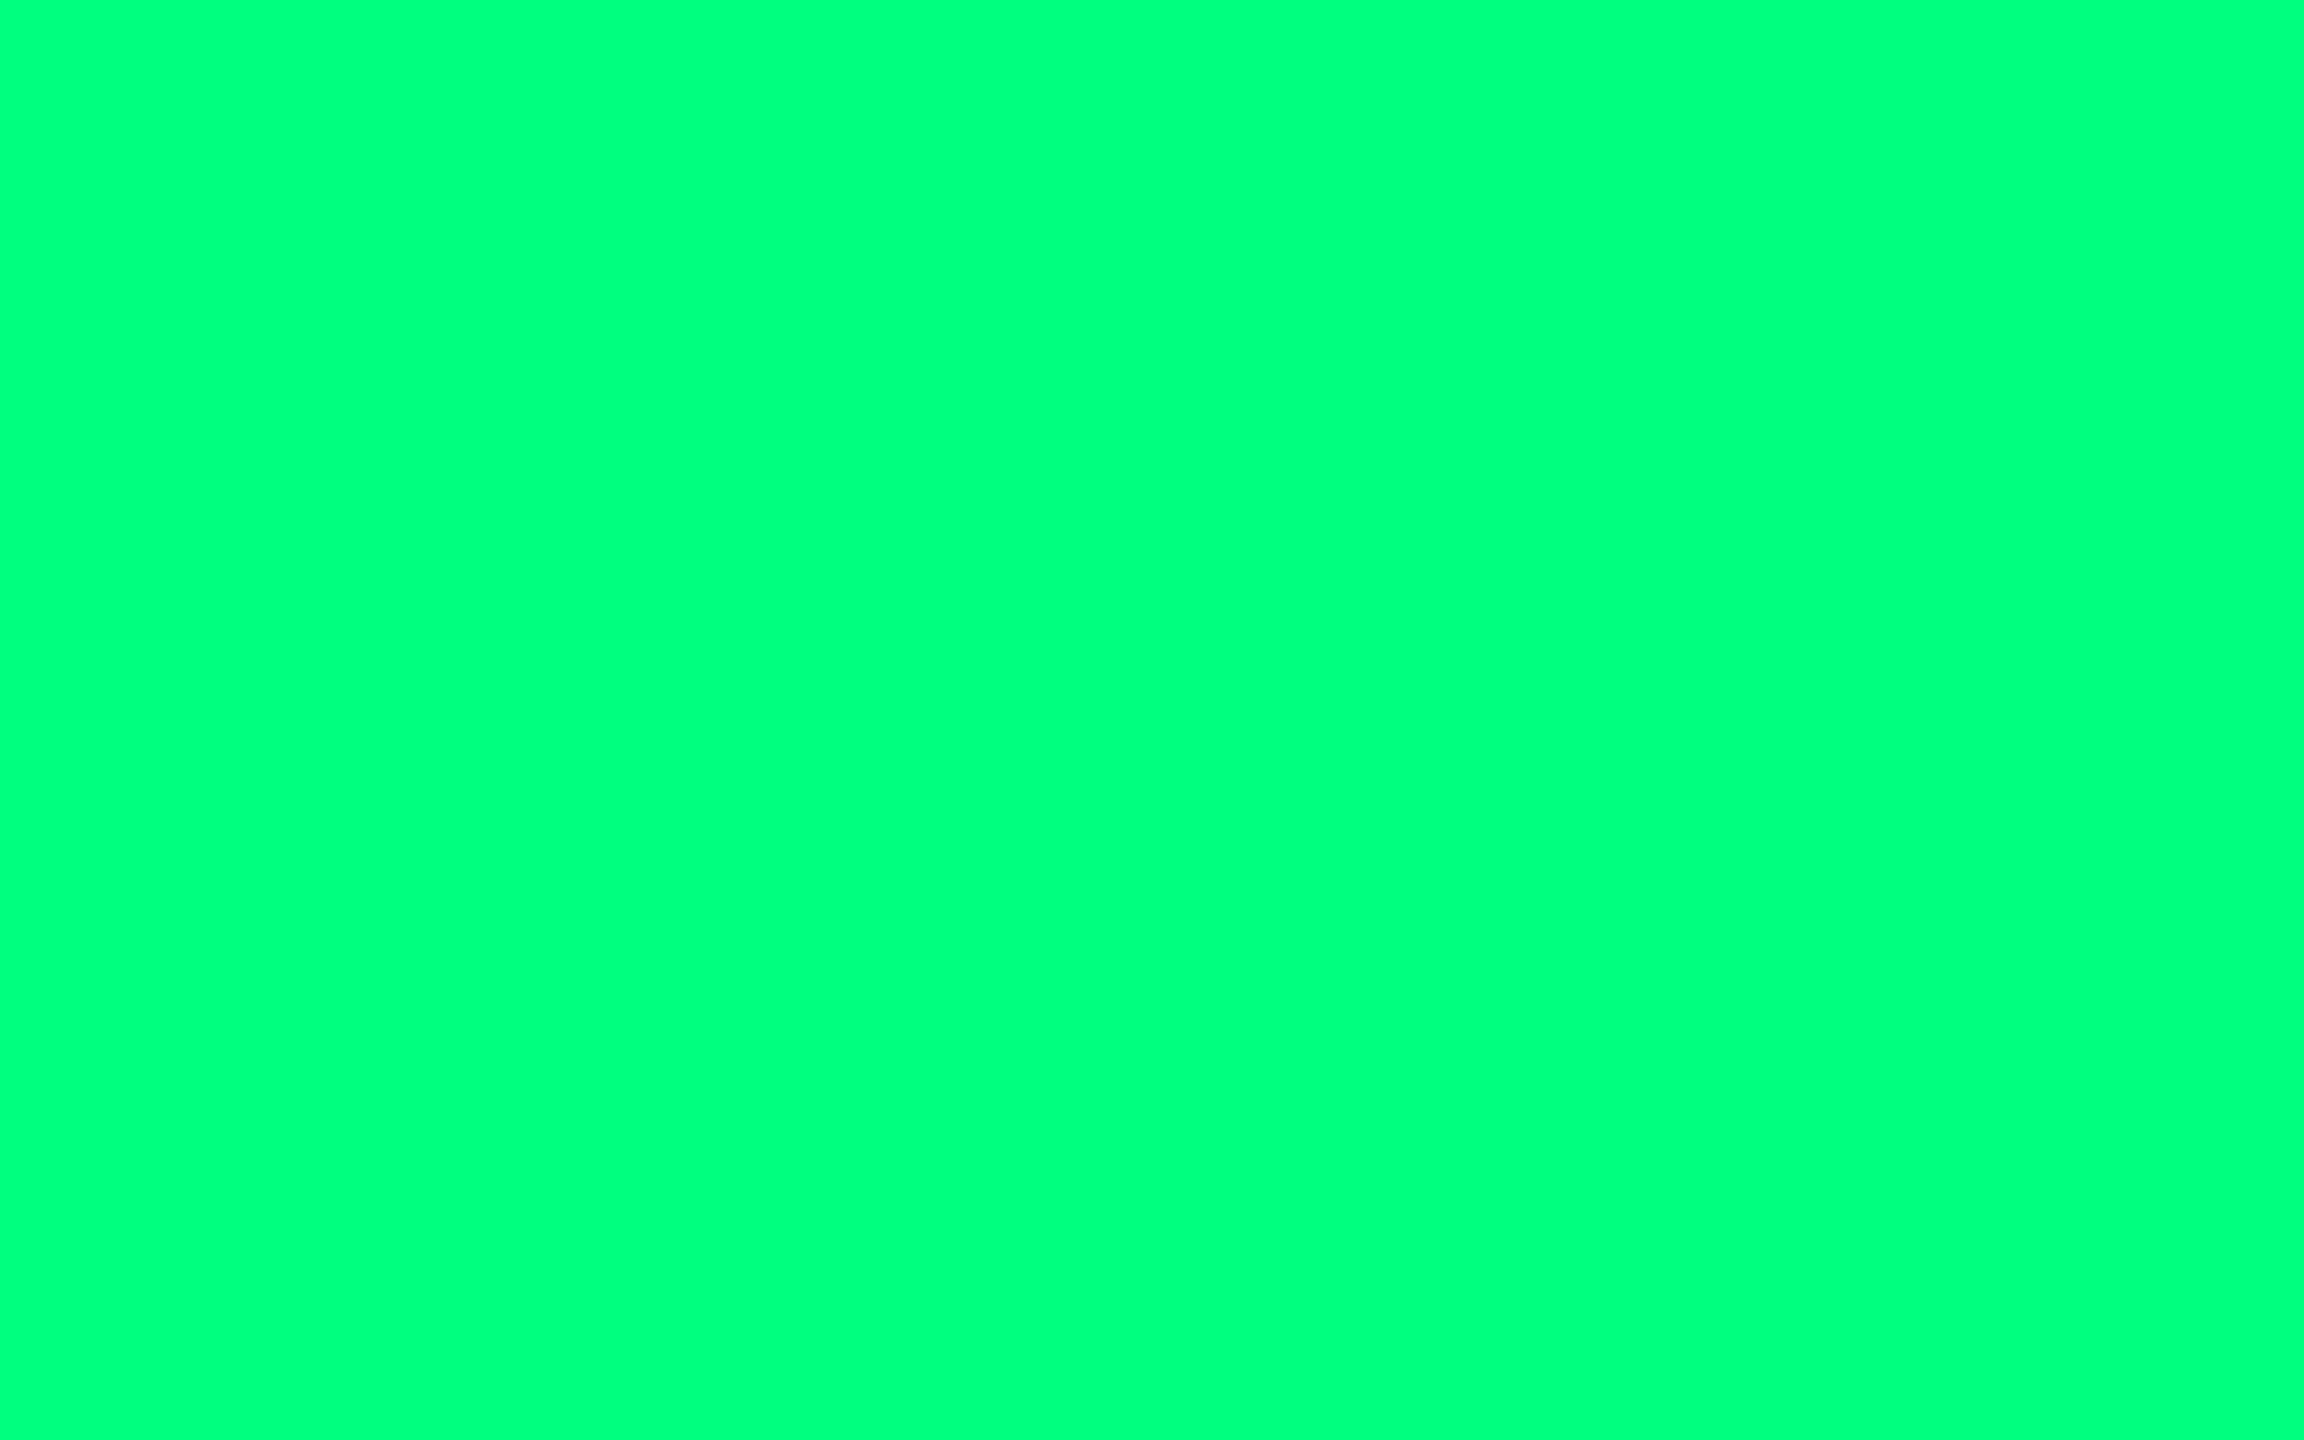 2304x1440 Guppie Green Solid Color Background